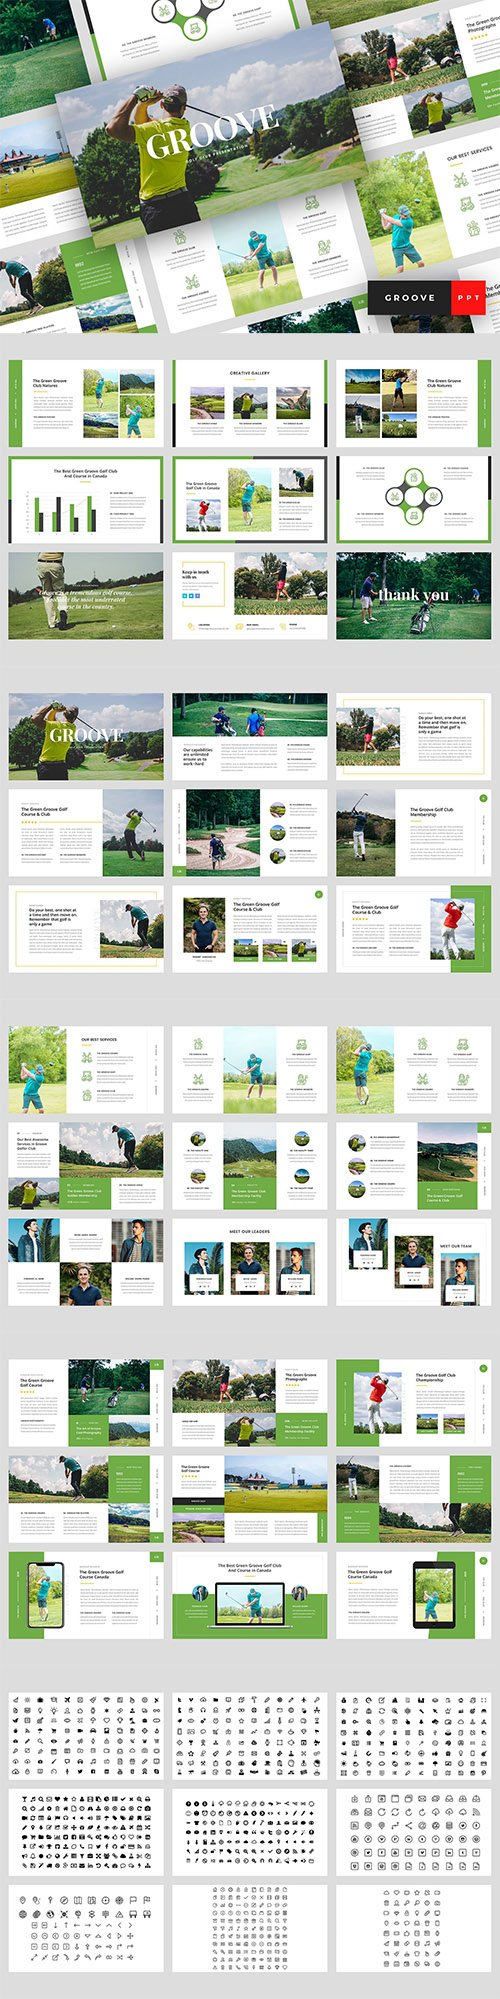 Groove - Golf Club Powerpoint Google Slides and Keynote Templates